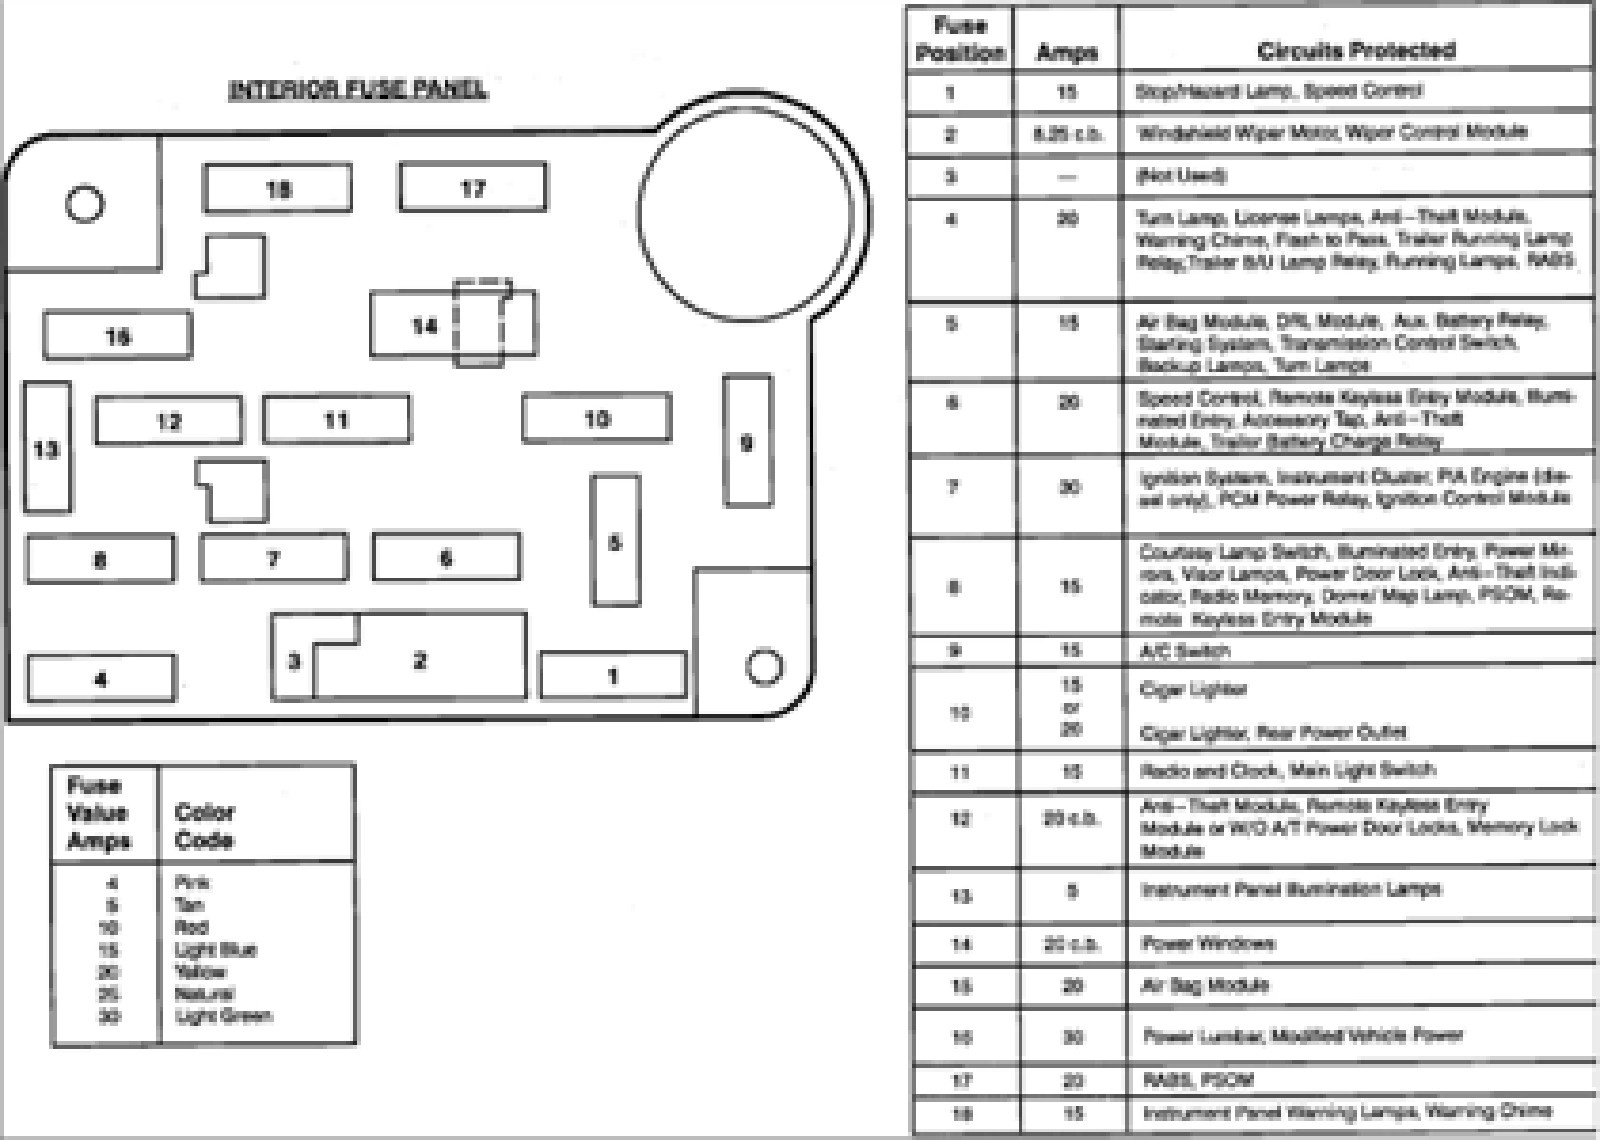 pic 8862473225641007897 1600x1200 ford e 150 questions fuse diagram for a 1993 ford econoline van ford e 150 fuse box diagram at reclaimingppi.co